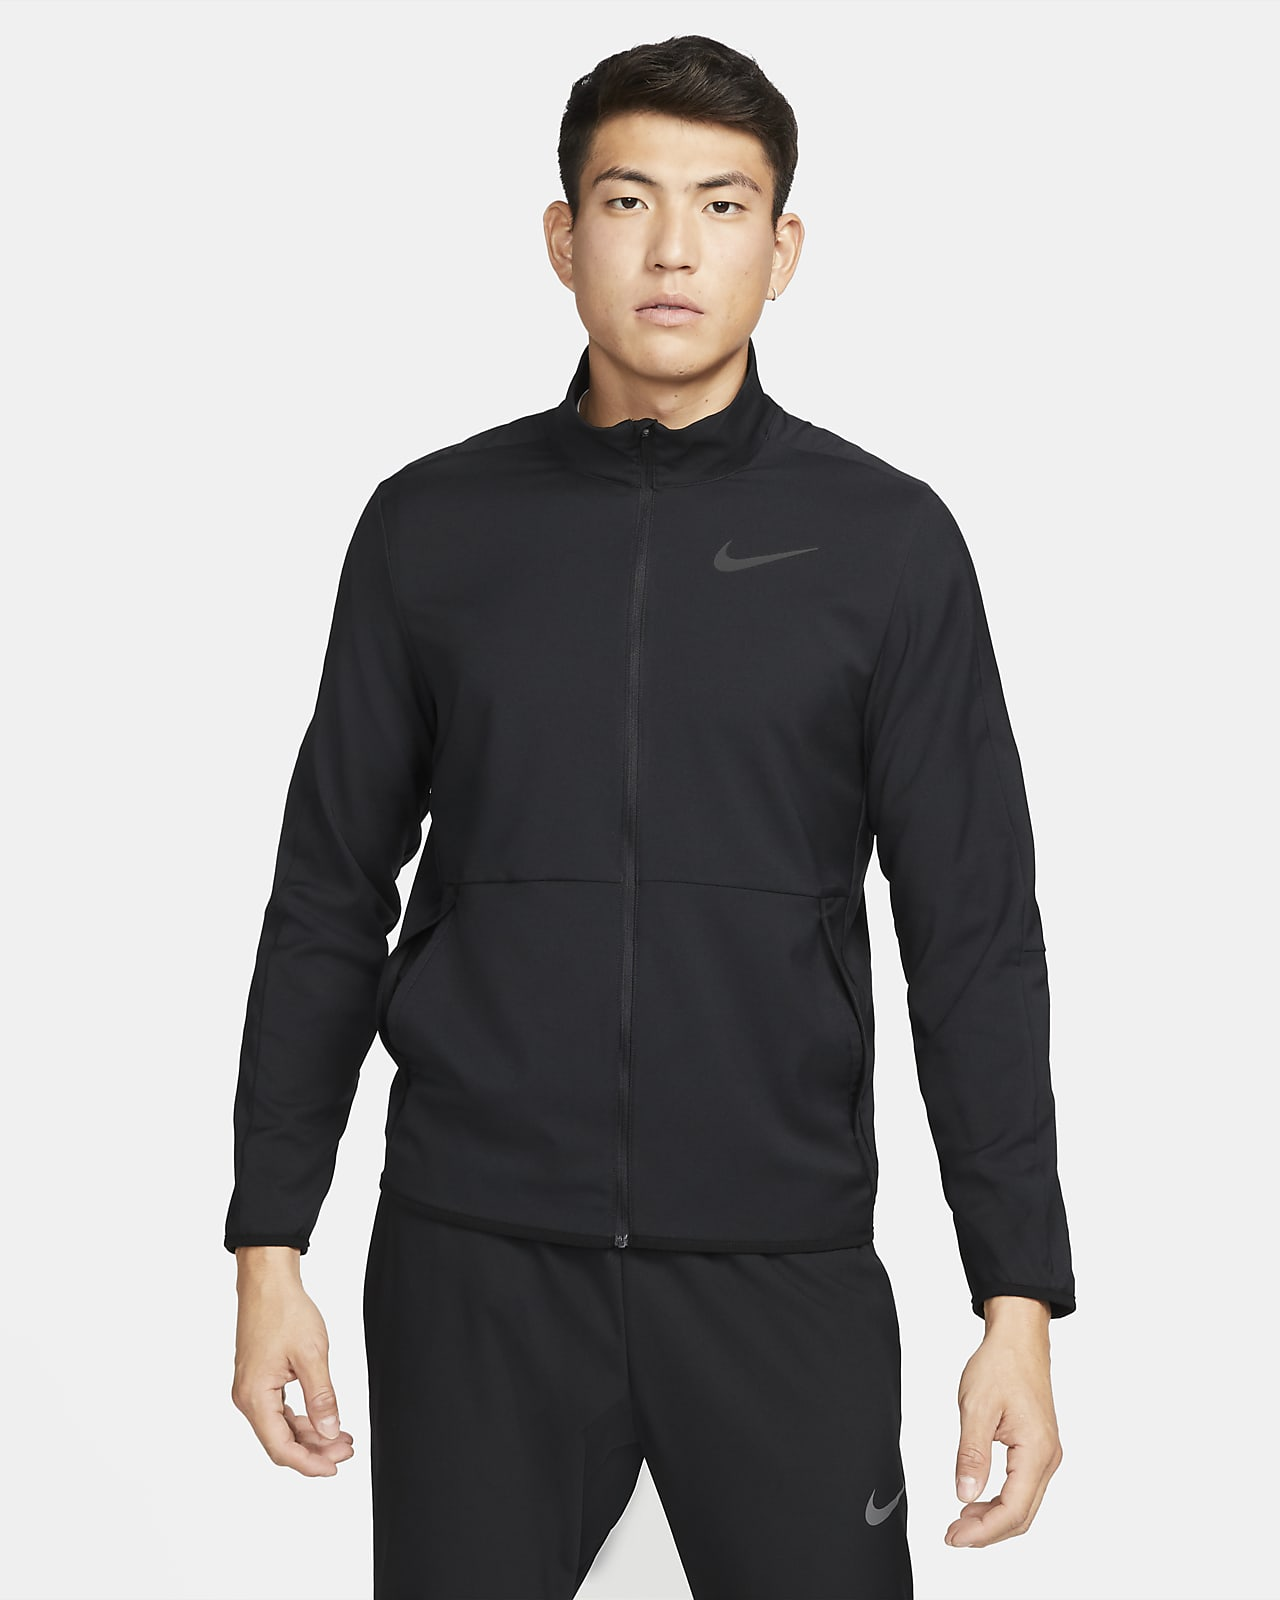 télex pesadilla aquí  Nike Dri-FIT Men's Woven Training Jacket. Nike IN